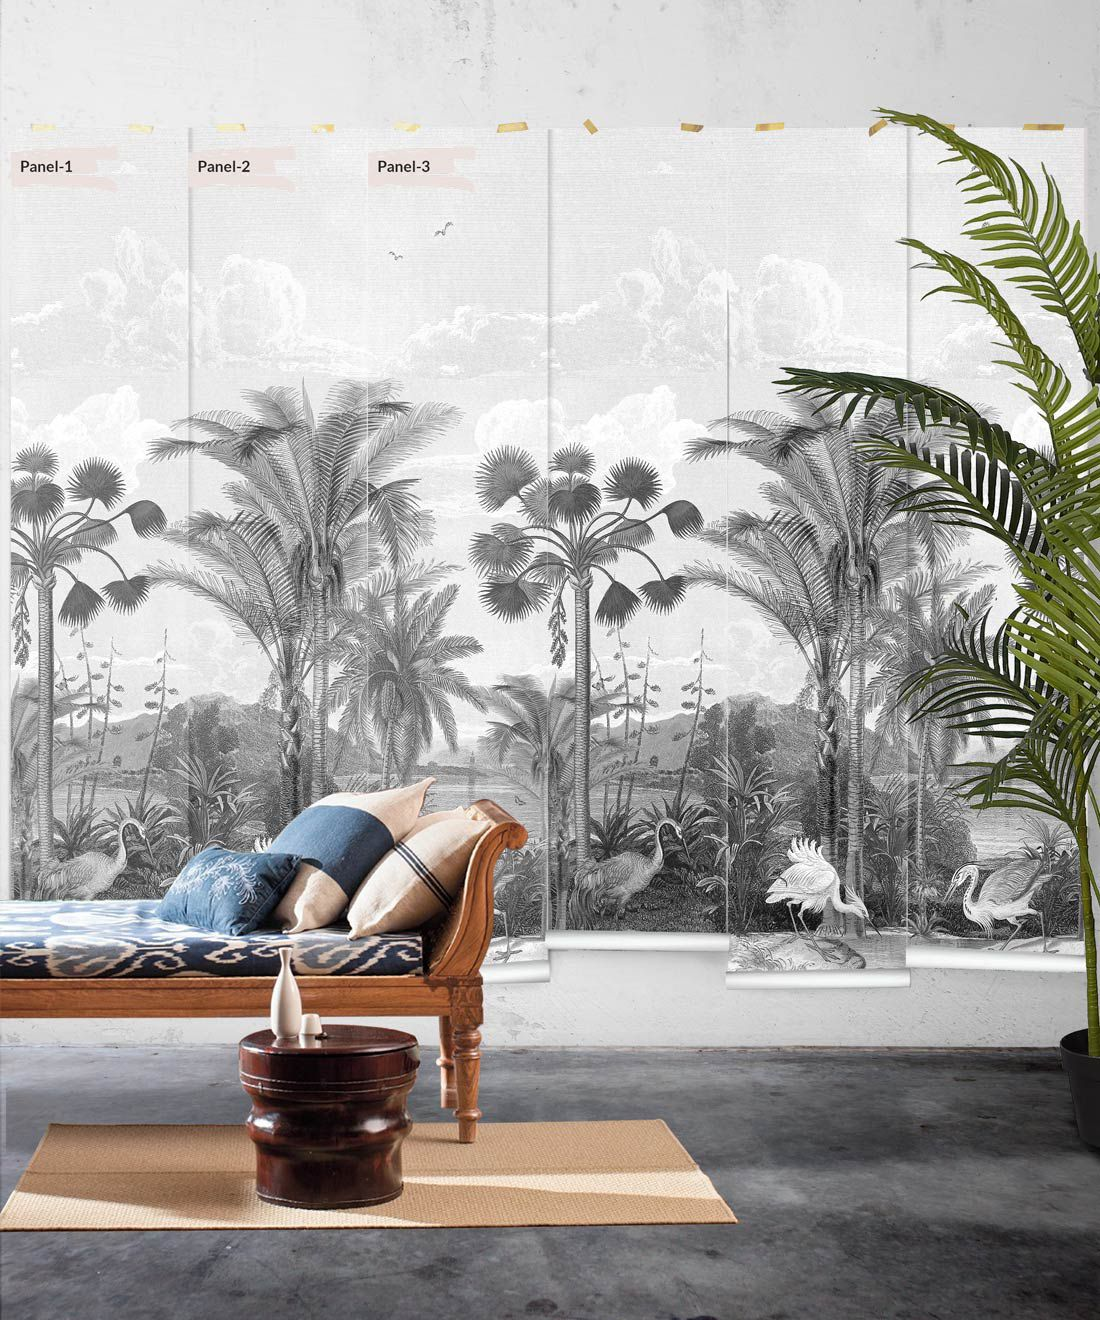 Indian Subcontinent Wallpaper Mural •Bethany Linz • Palm Tree Mural • Black & White • Panels